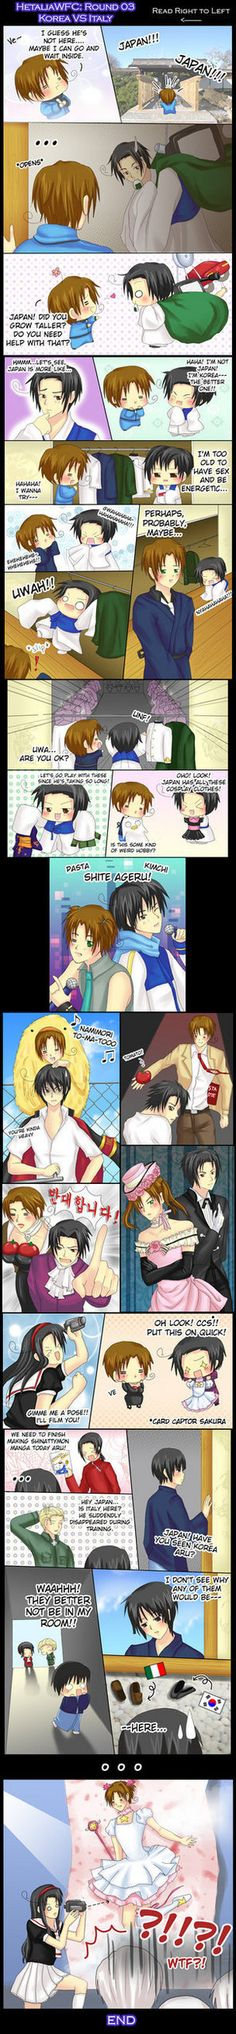 APH Hetalia funny comic <<<< *laughing* *unable to breathe*